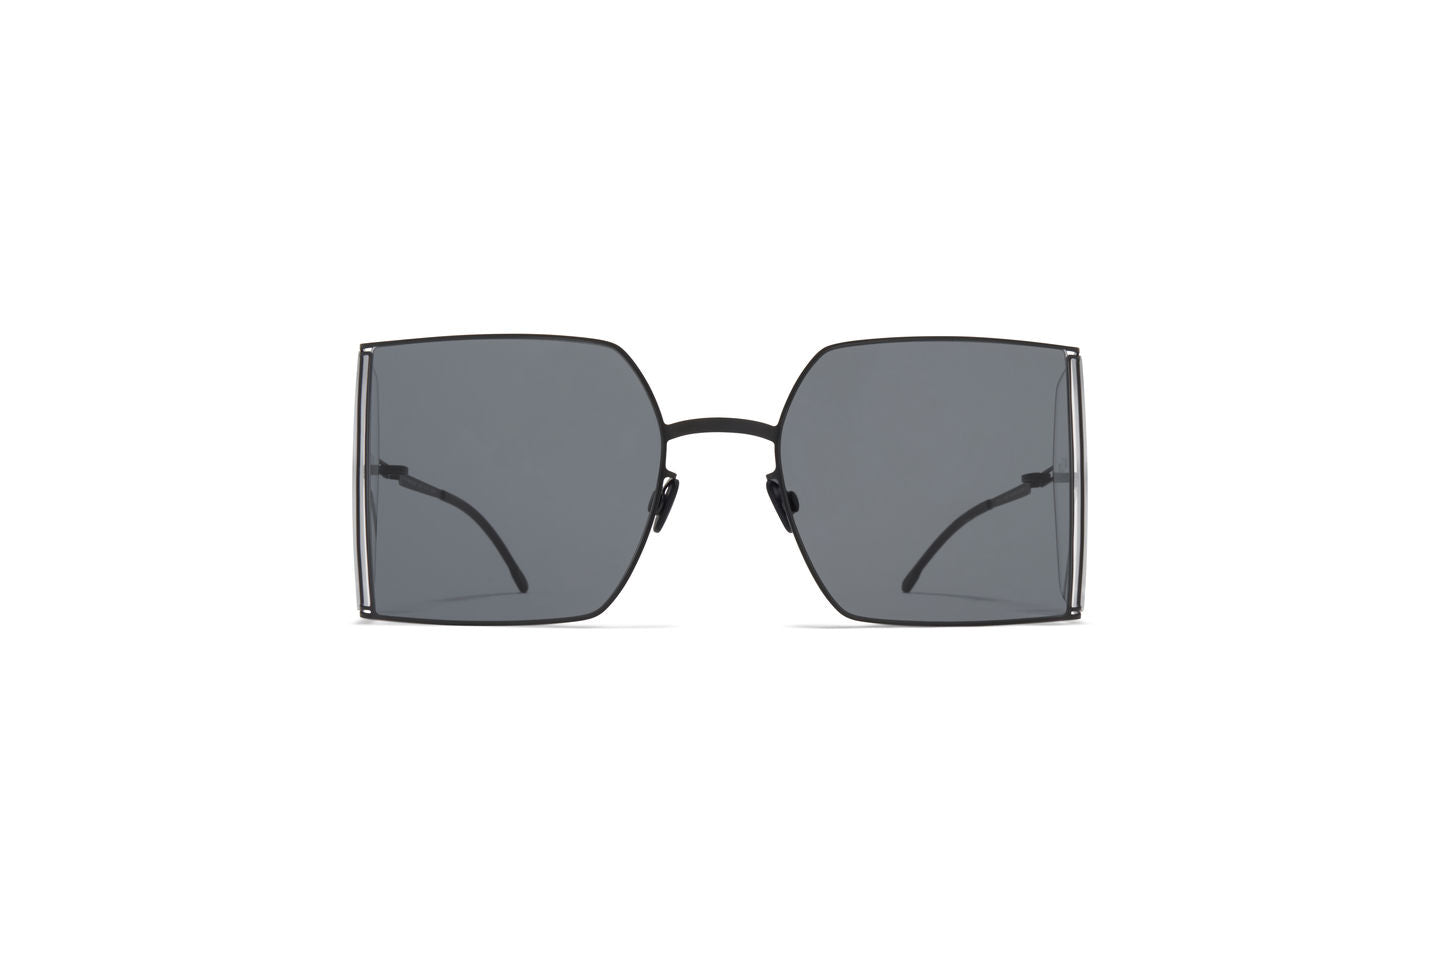 HL003 / Black Clear Sides Dark Grey